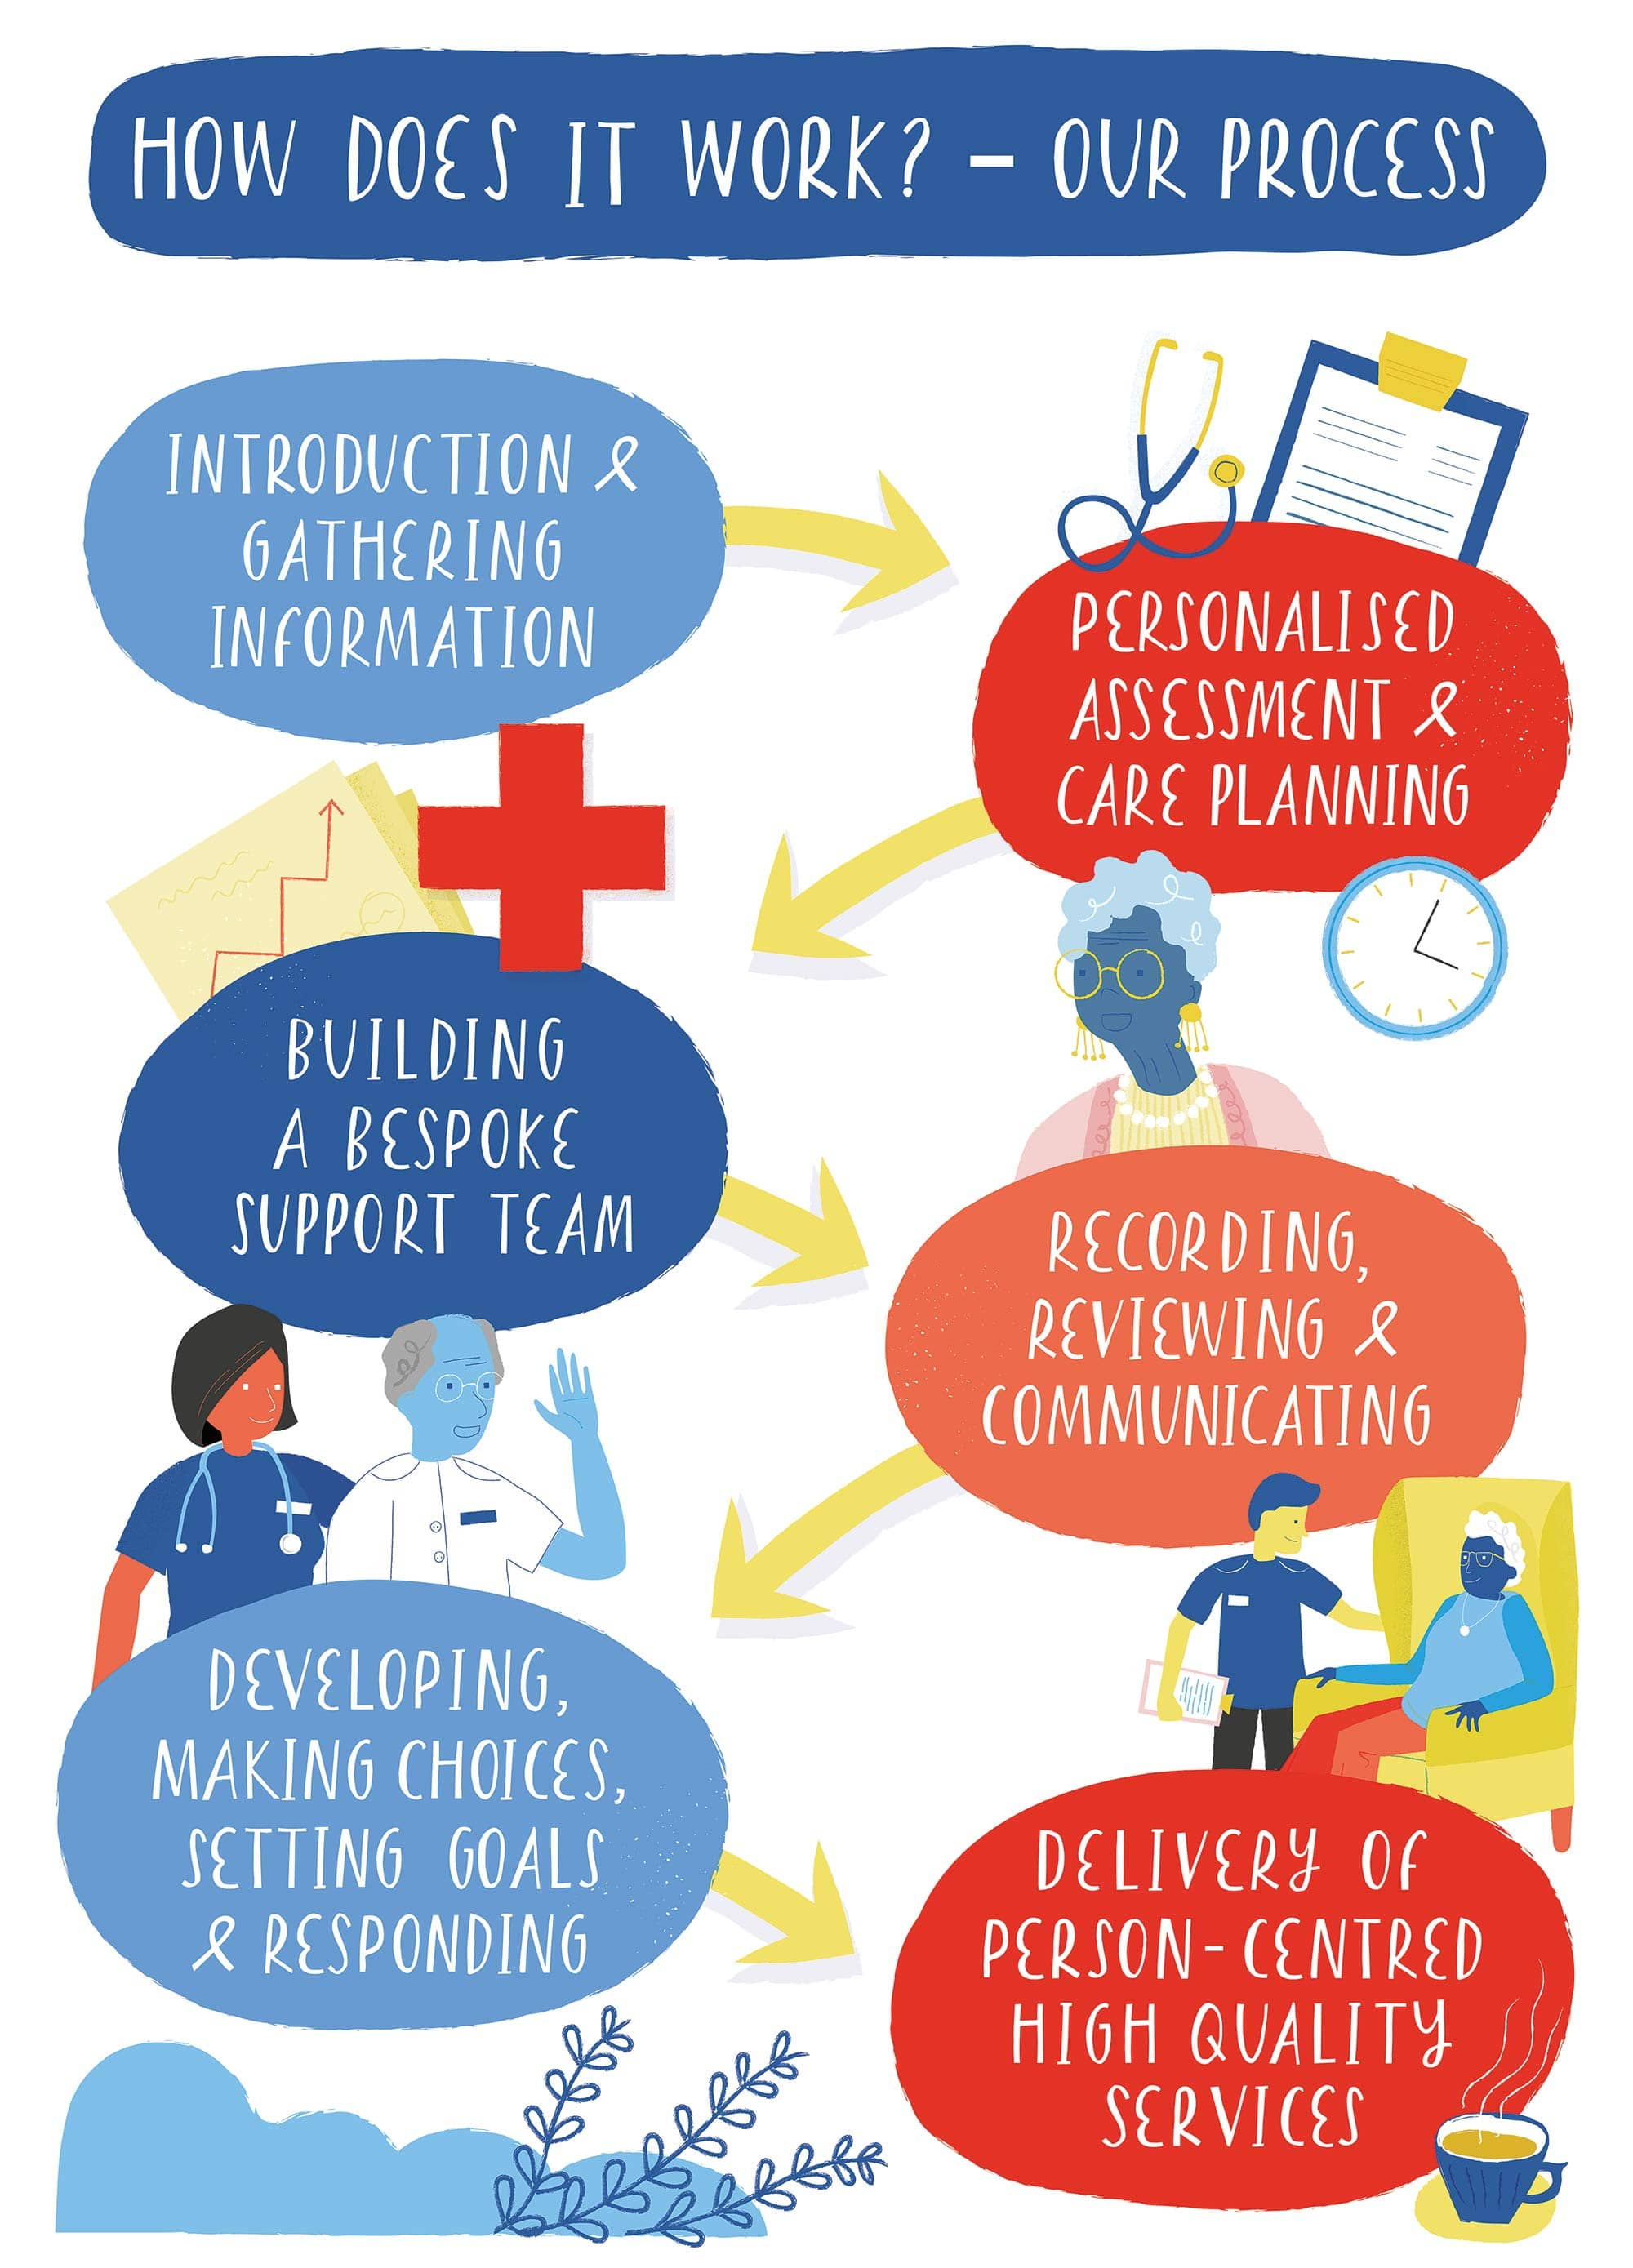 Graphic showing how our care process works through planning, team work, enabling choice, and delivery of person-centered services